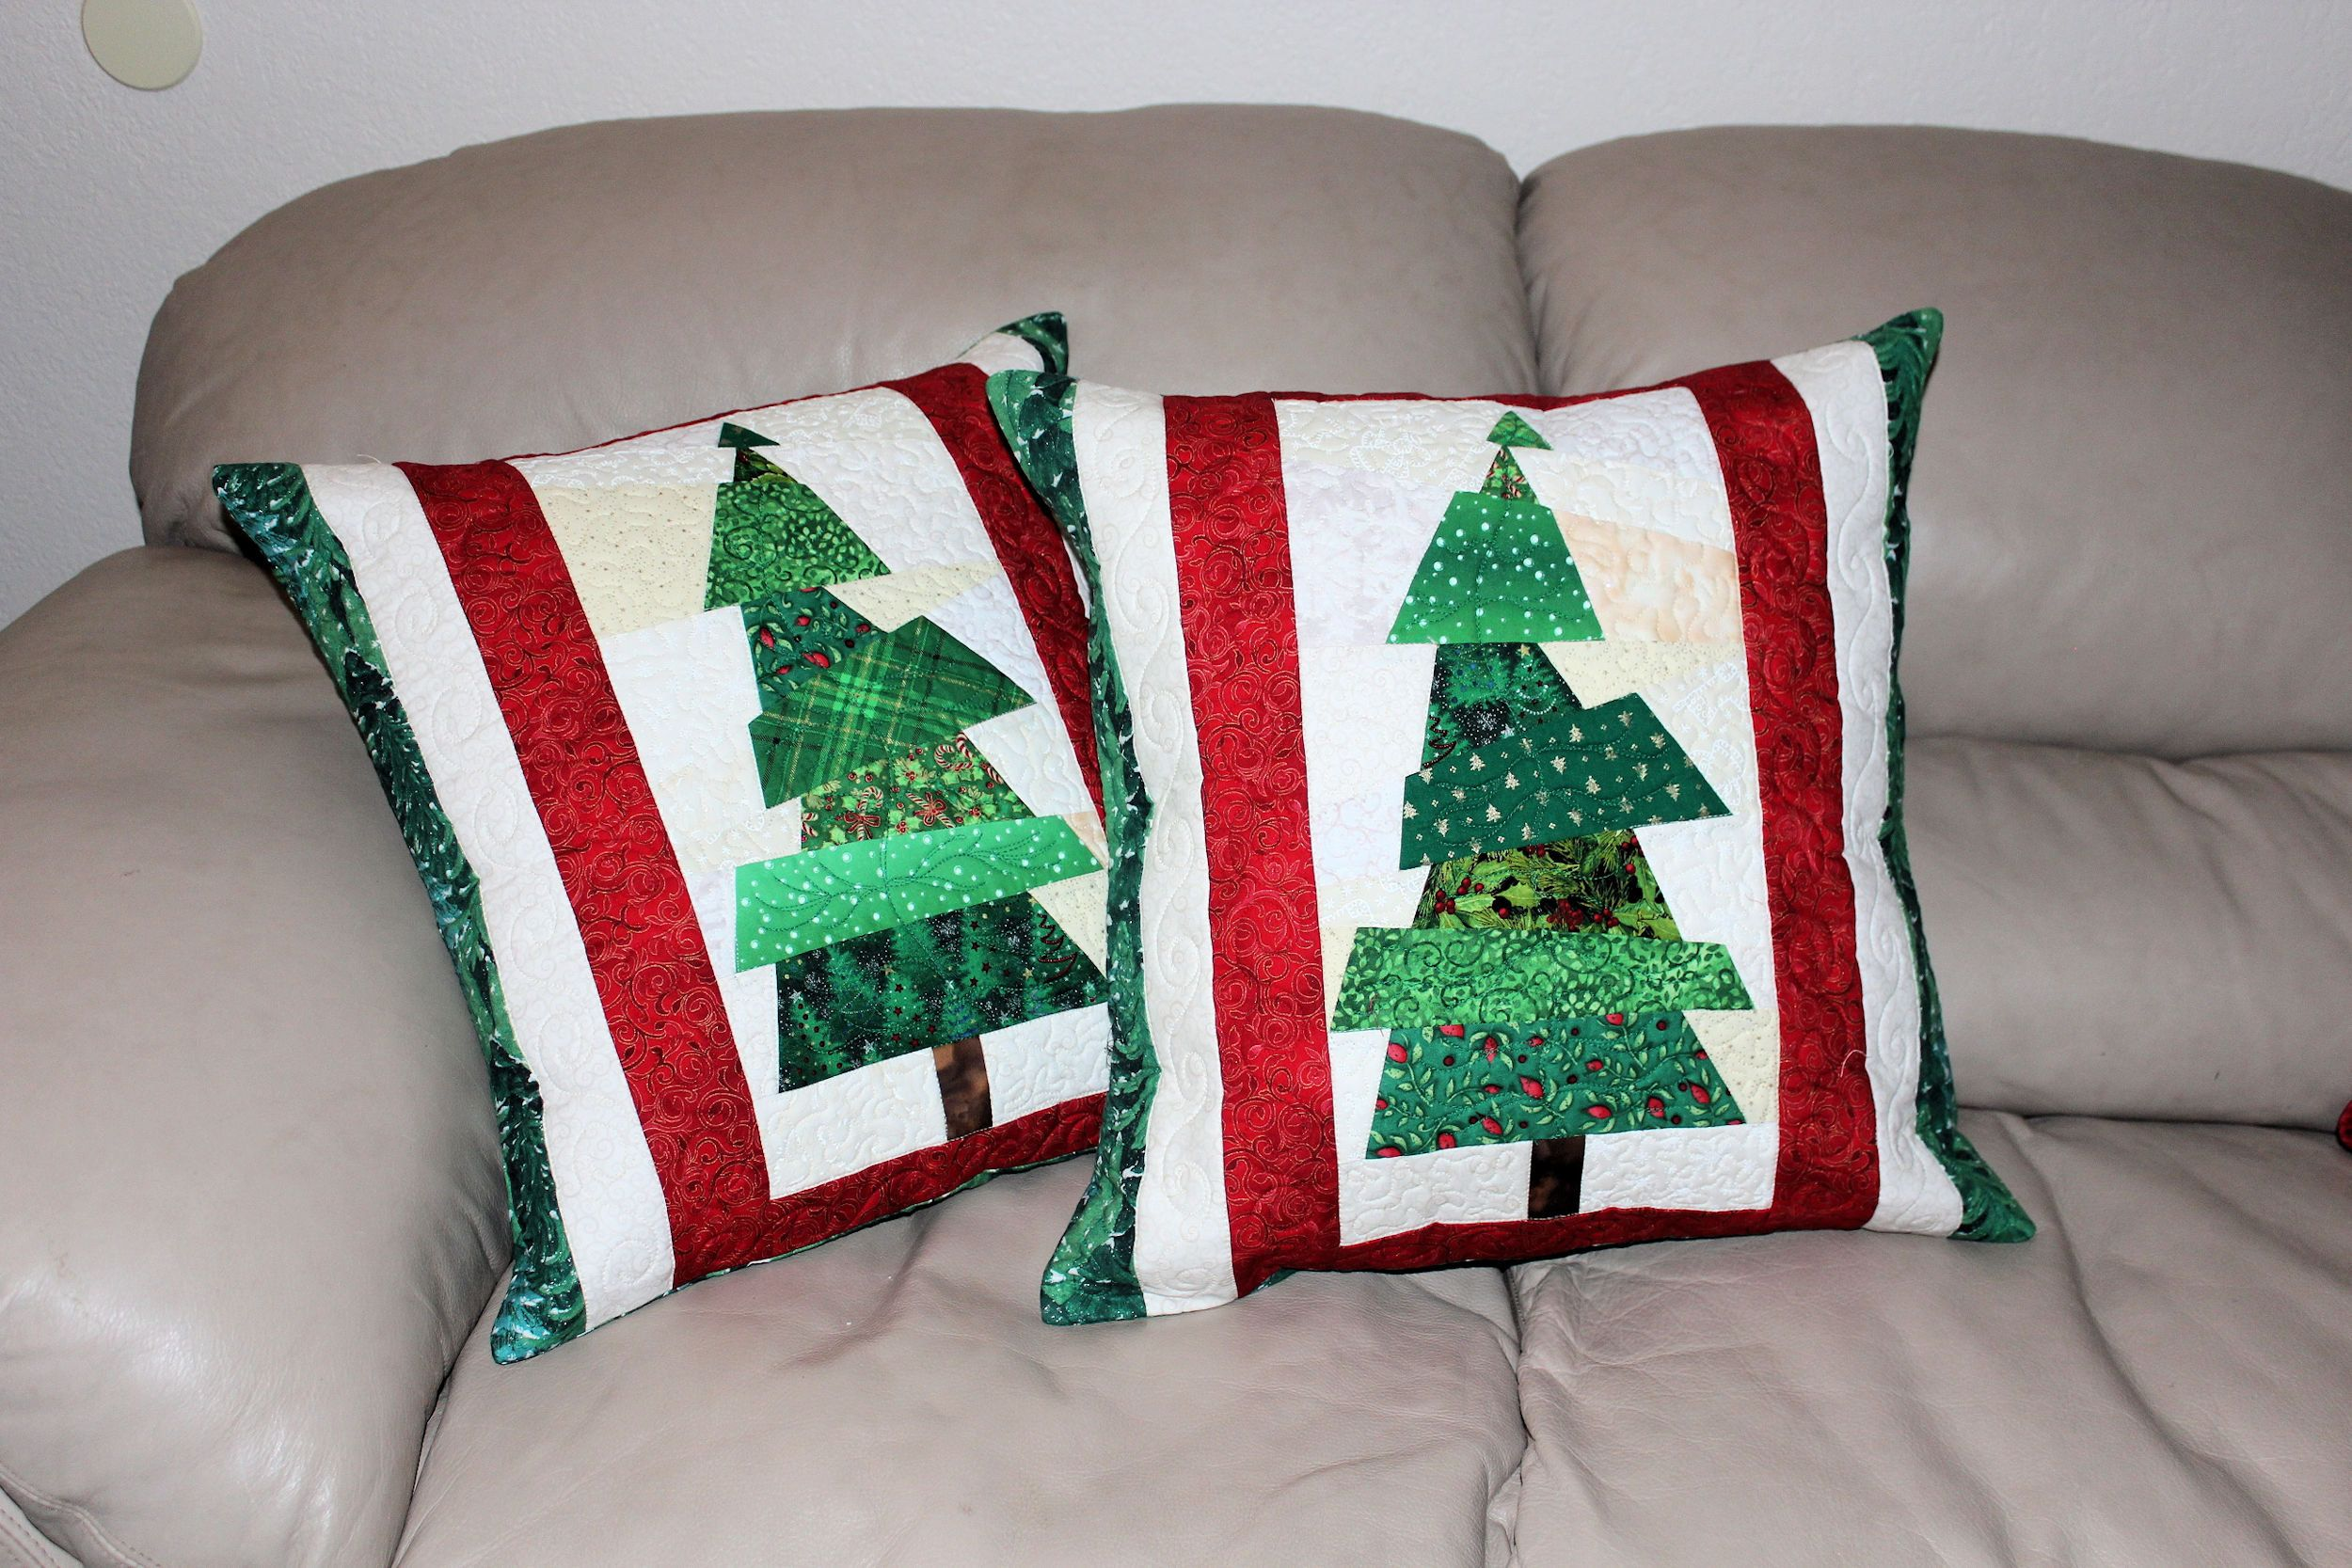 Quilted Christmas Pillows Set Of Two Christmas Tree Quilted Throw Pillows 20 Inch Red And Green Crazy Patchwork Pillows Quiltsy Handmade With Images Christmas Tree Quilt Throw Quilt Patchwork Pillow